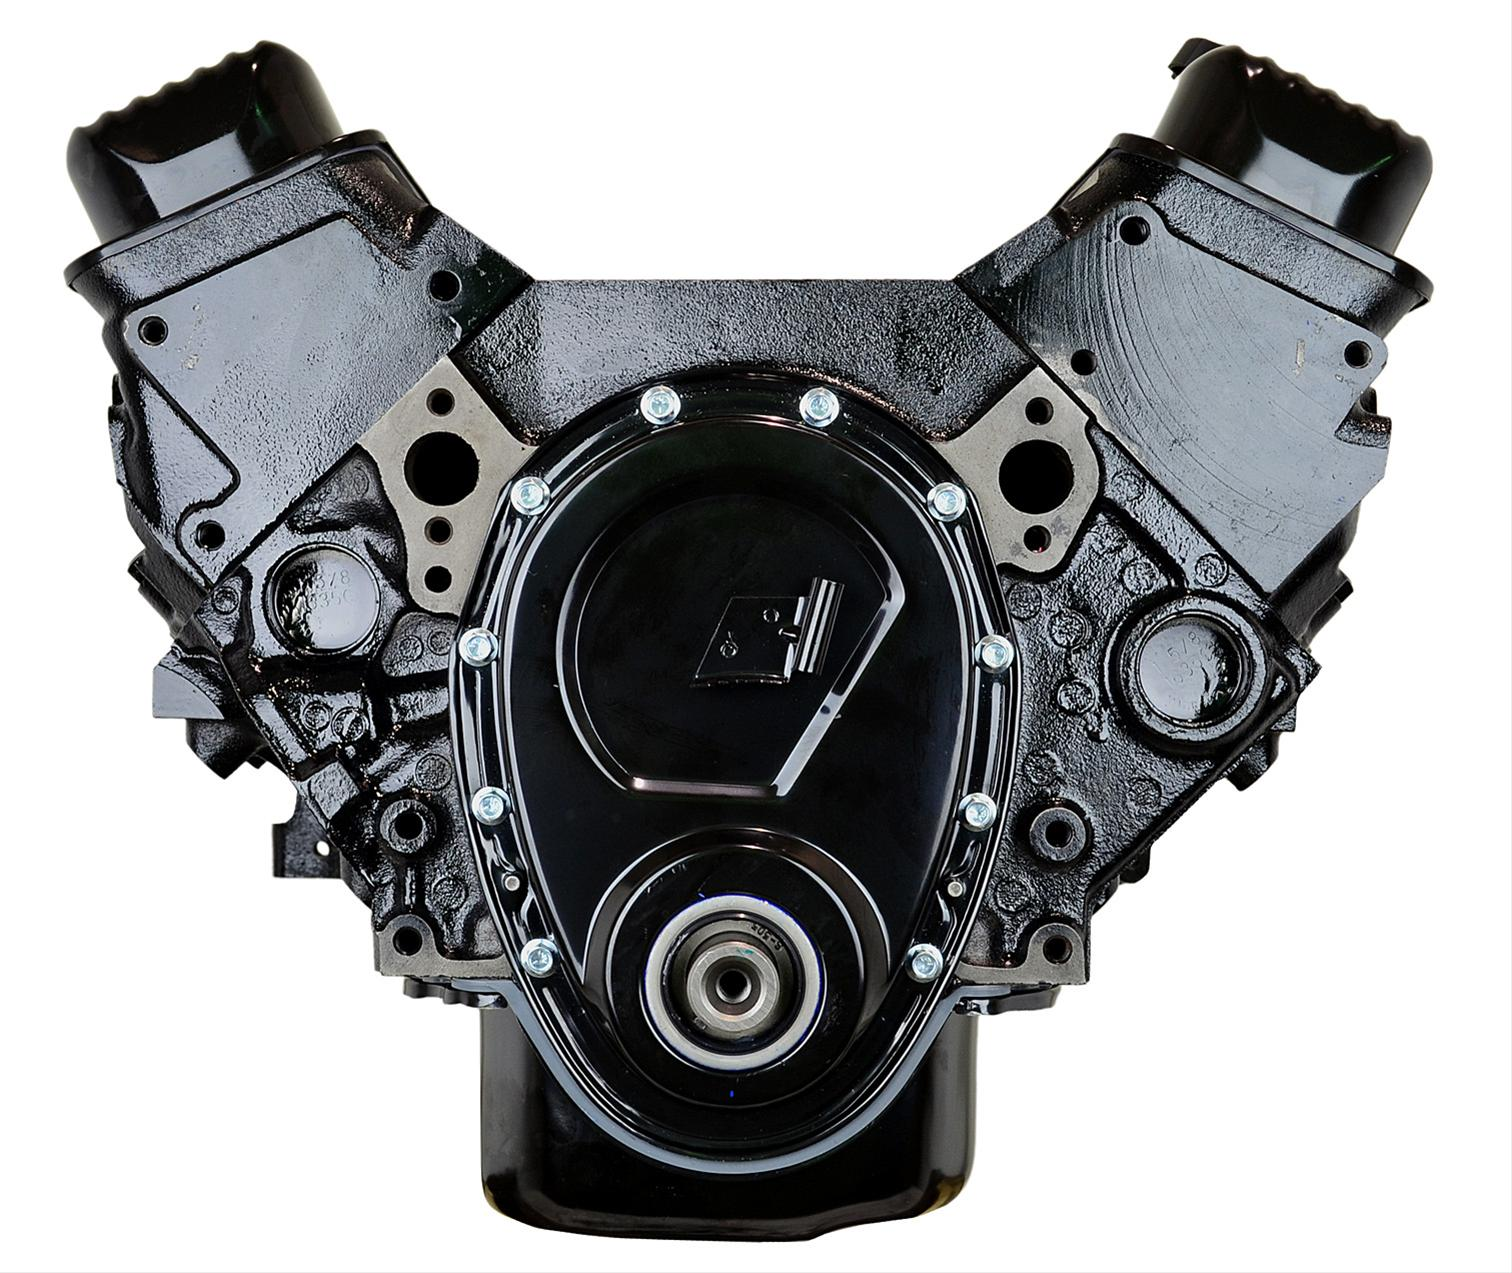 remanufactured completely for engines ny land in united sale states landrover defender rover southampton rebuilt cars